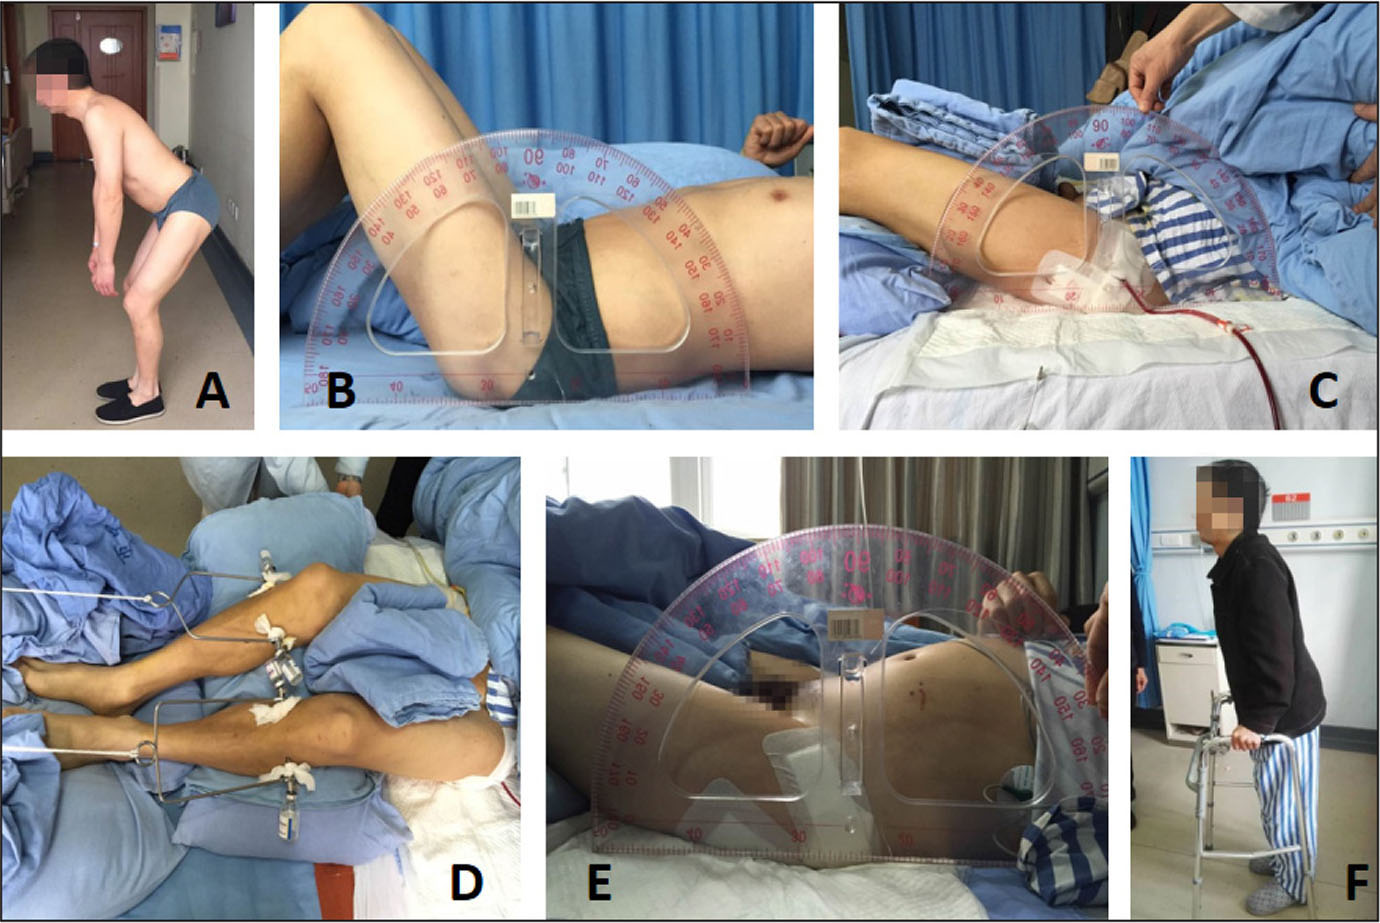 A representative patient with ankylosing spondylitis in the experimental group. Preoperative range of motion in hip flexion is 90° (A). Preoperative range of motion in hip extension is 60° (B). Range of motion of the hip is 40° after soft tissue release of the hip joint and femoral osteotomy (C). Supracondylar bone traction (D). Range of motion of the hip is 20° after supracondylar bone traction (E). Range of motion of the hip is 10° after total hip arthroplasty (F).